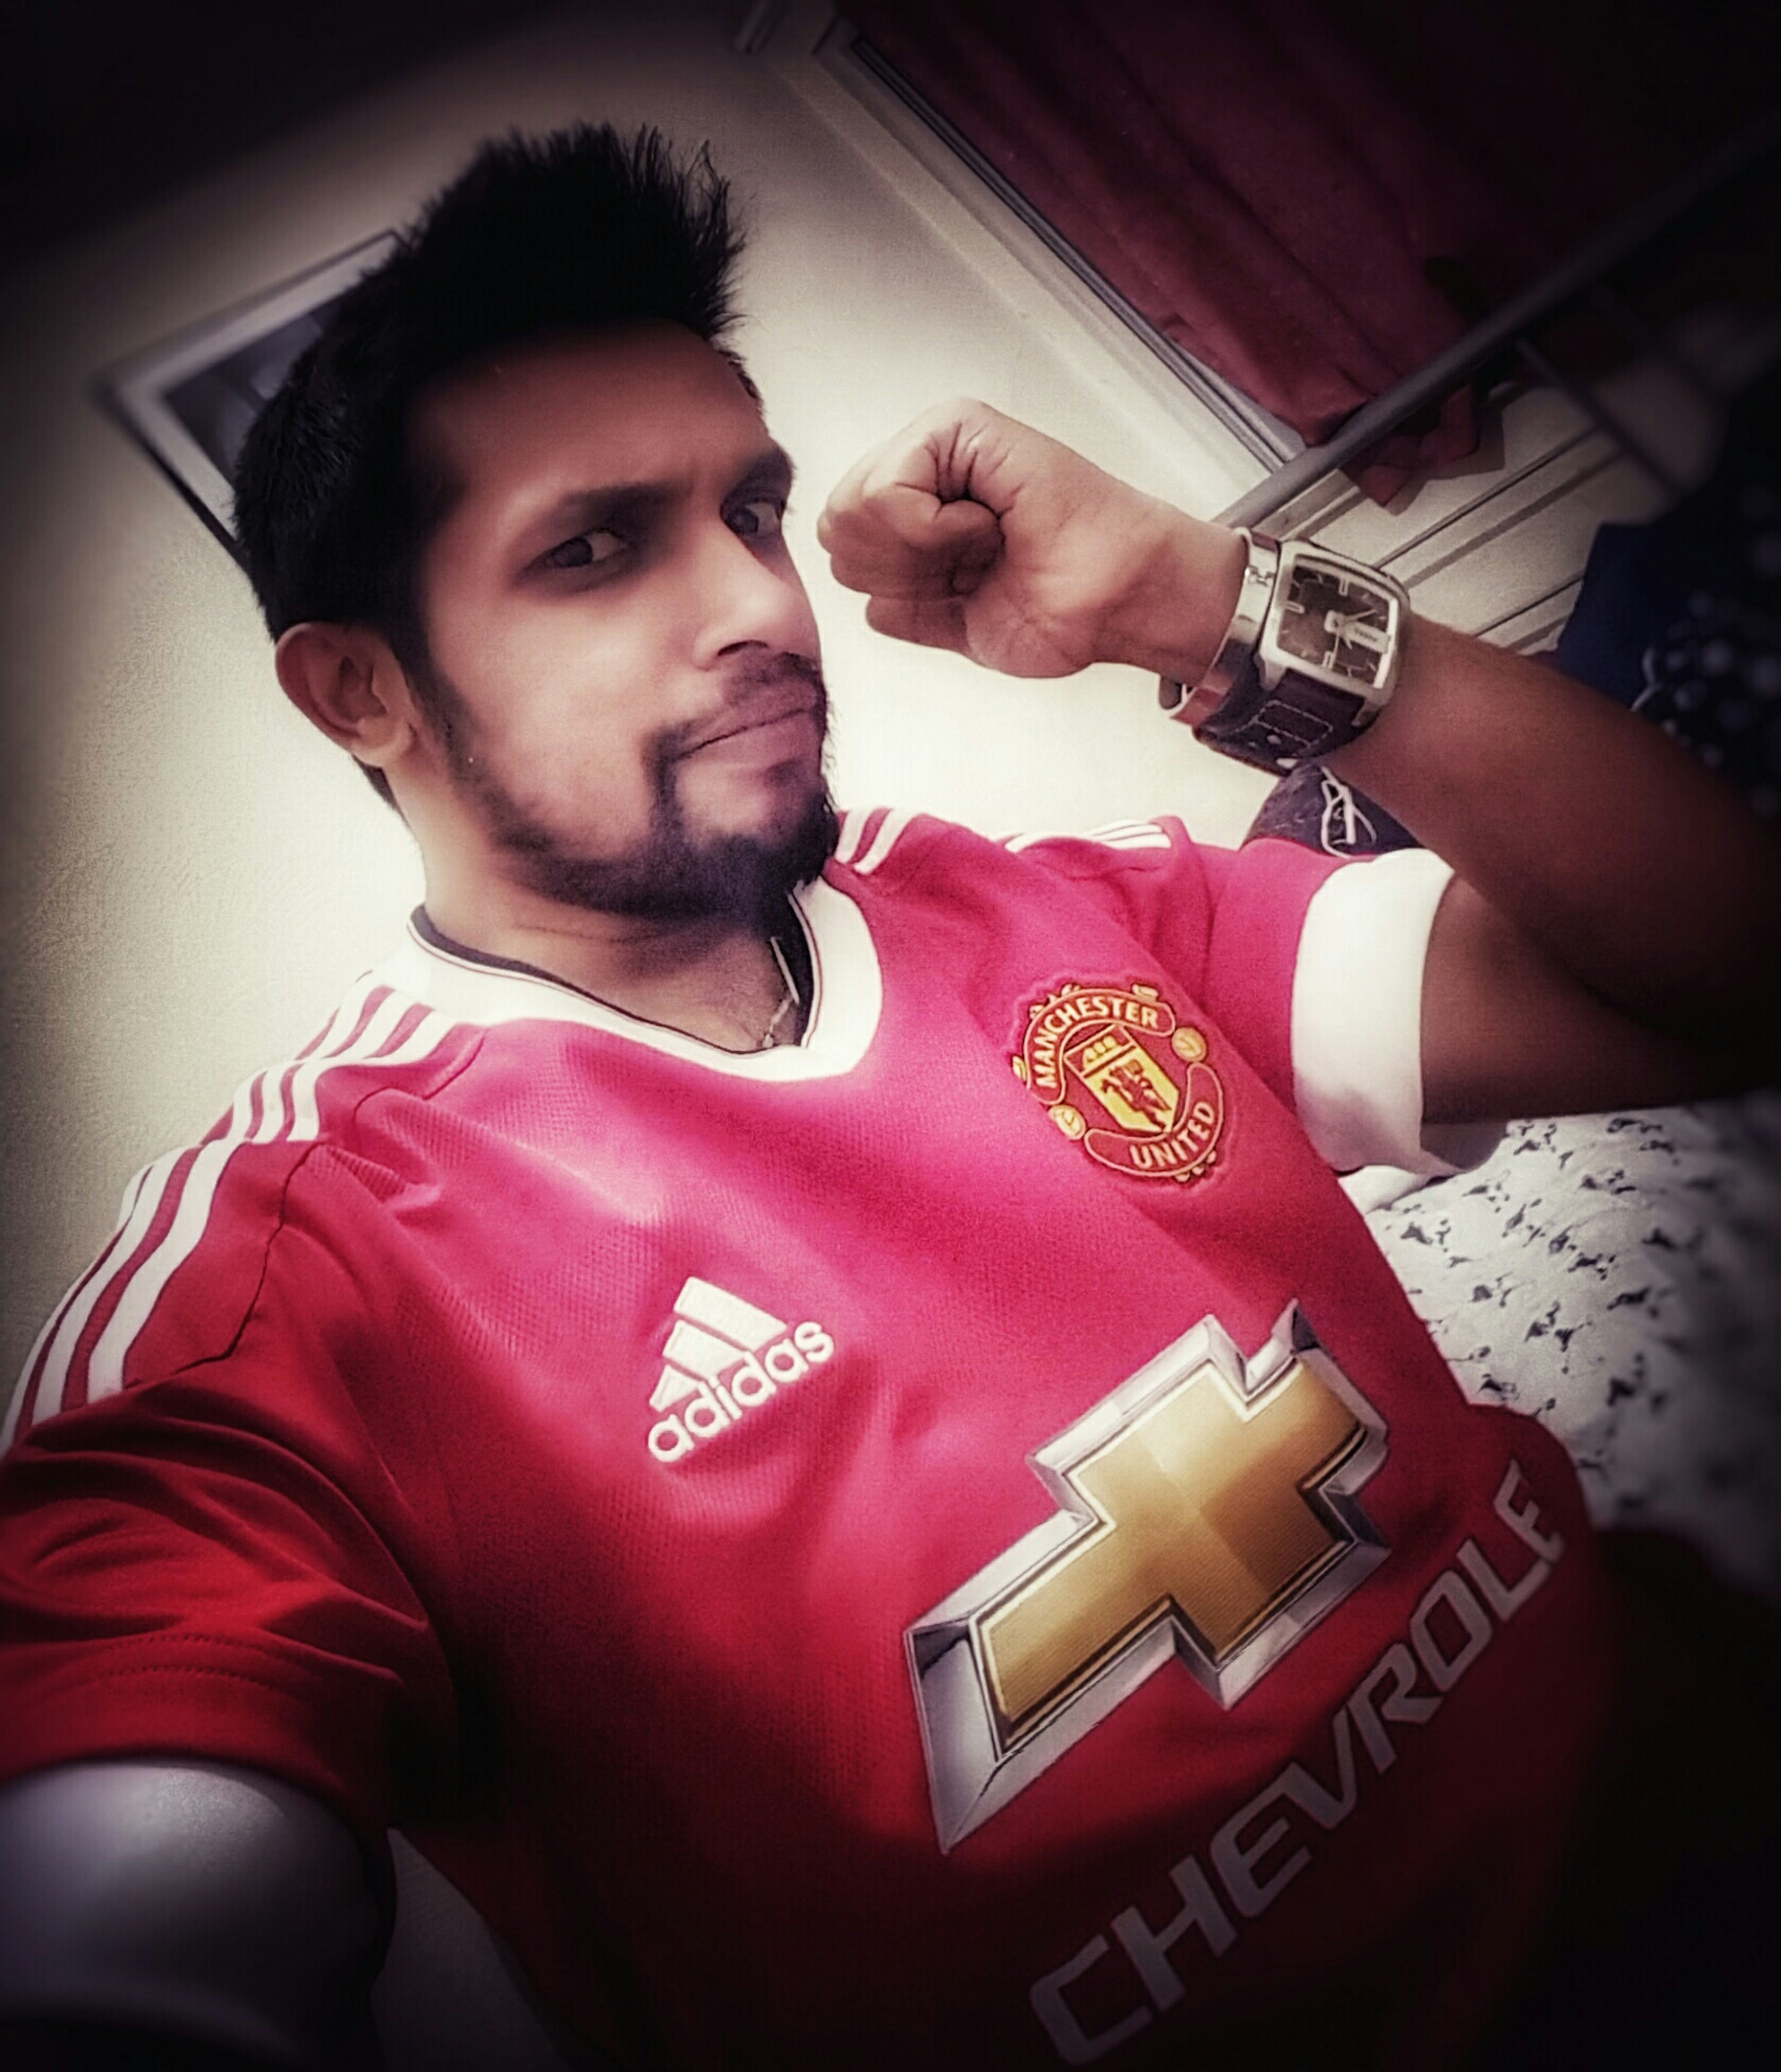 Taking Photos Hi! Self Portrait Hairstyles Manchesterunited Selfie ✌ Today's Hot Look That's Me Hot_shotz Style